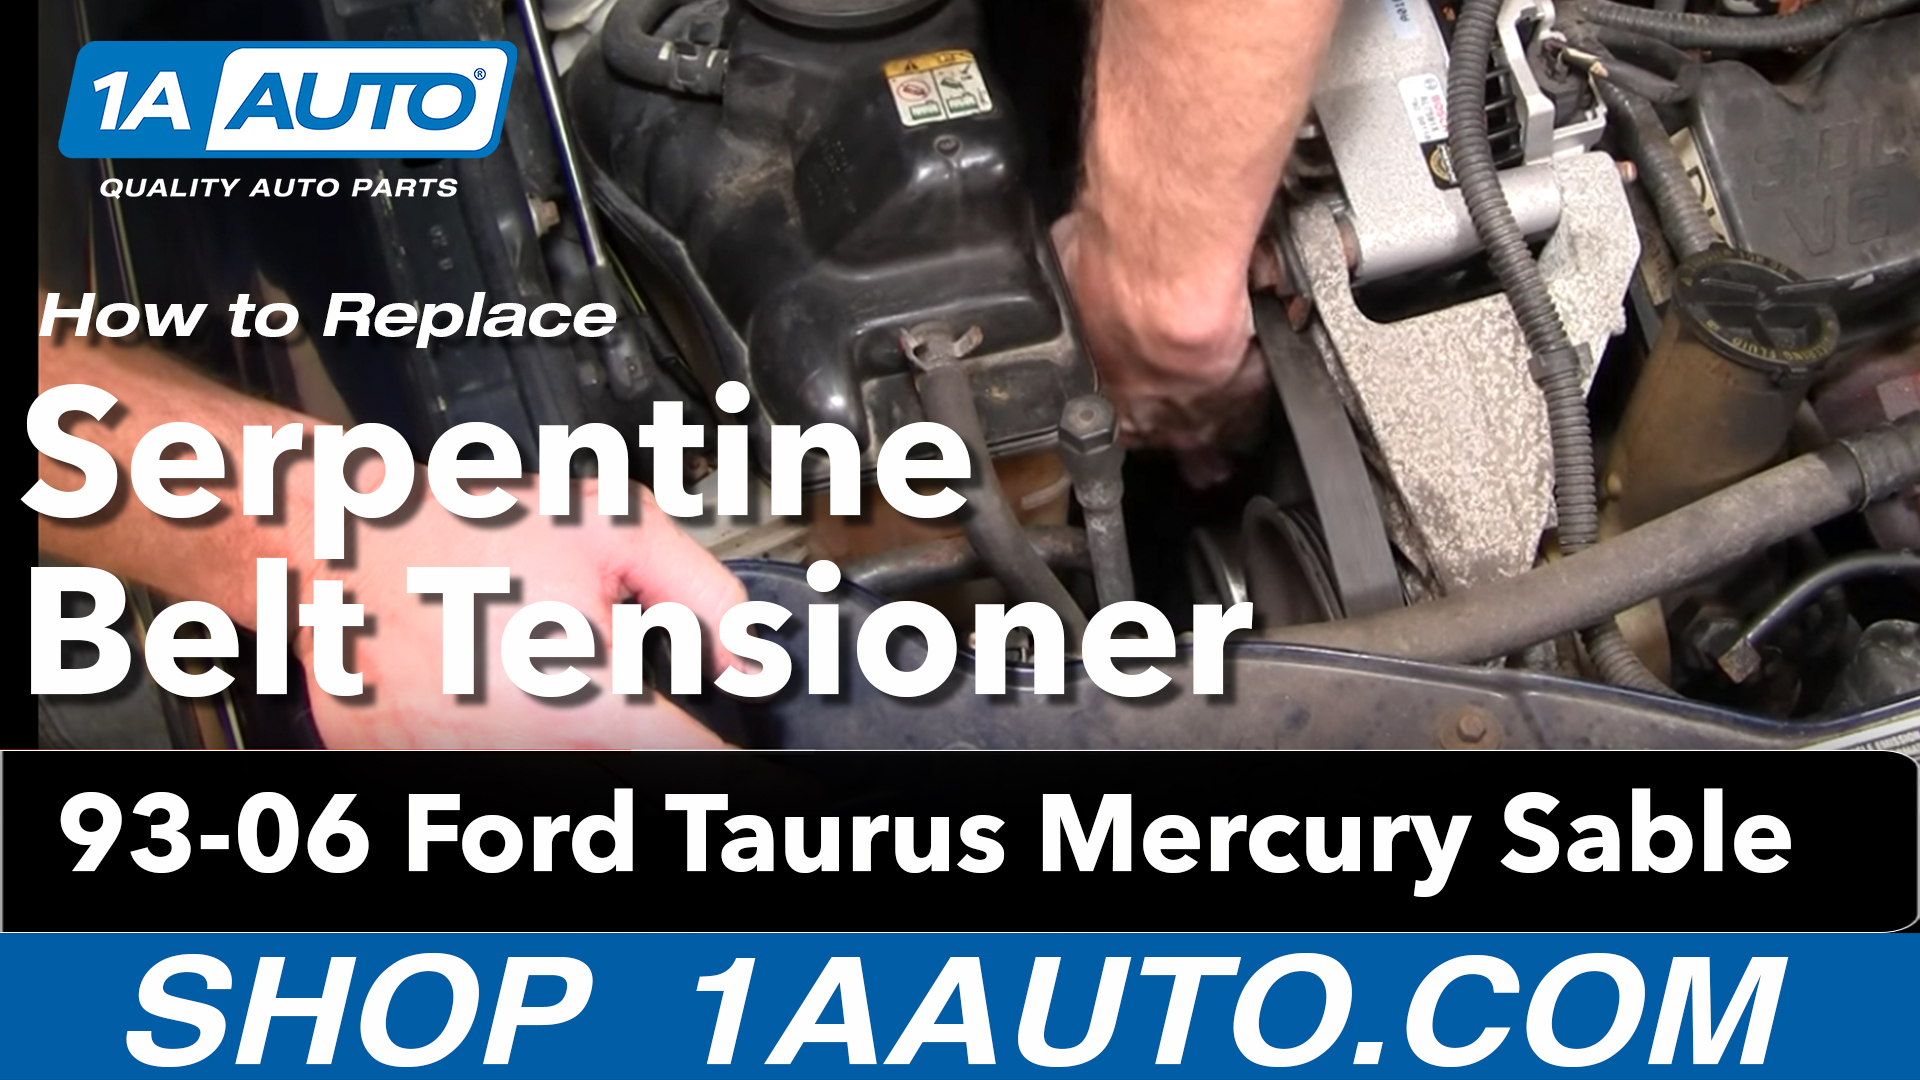 2006 Ford F150 Fuse Box How To Replace Serpentine Belt Tensioner 93 07 Ford Taurus